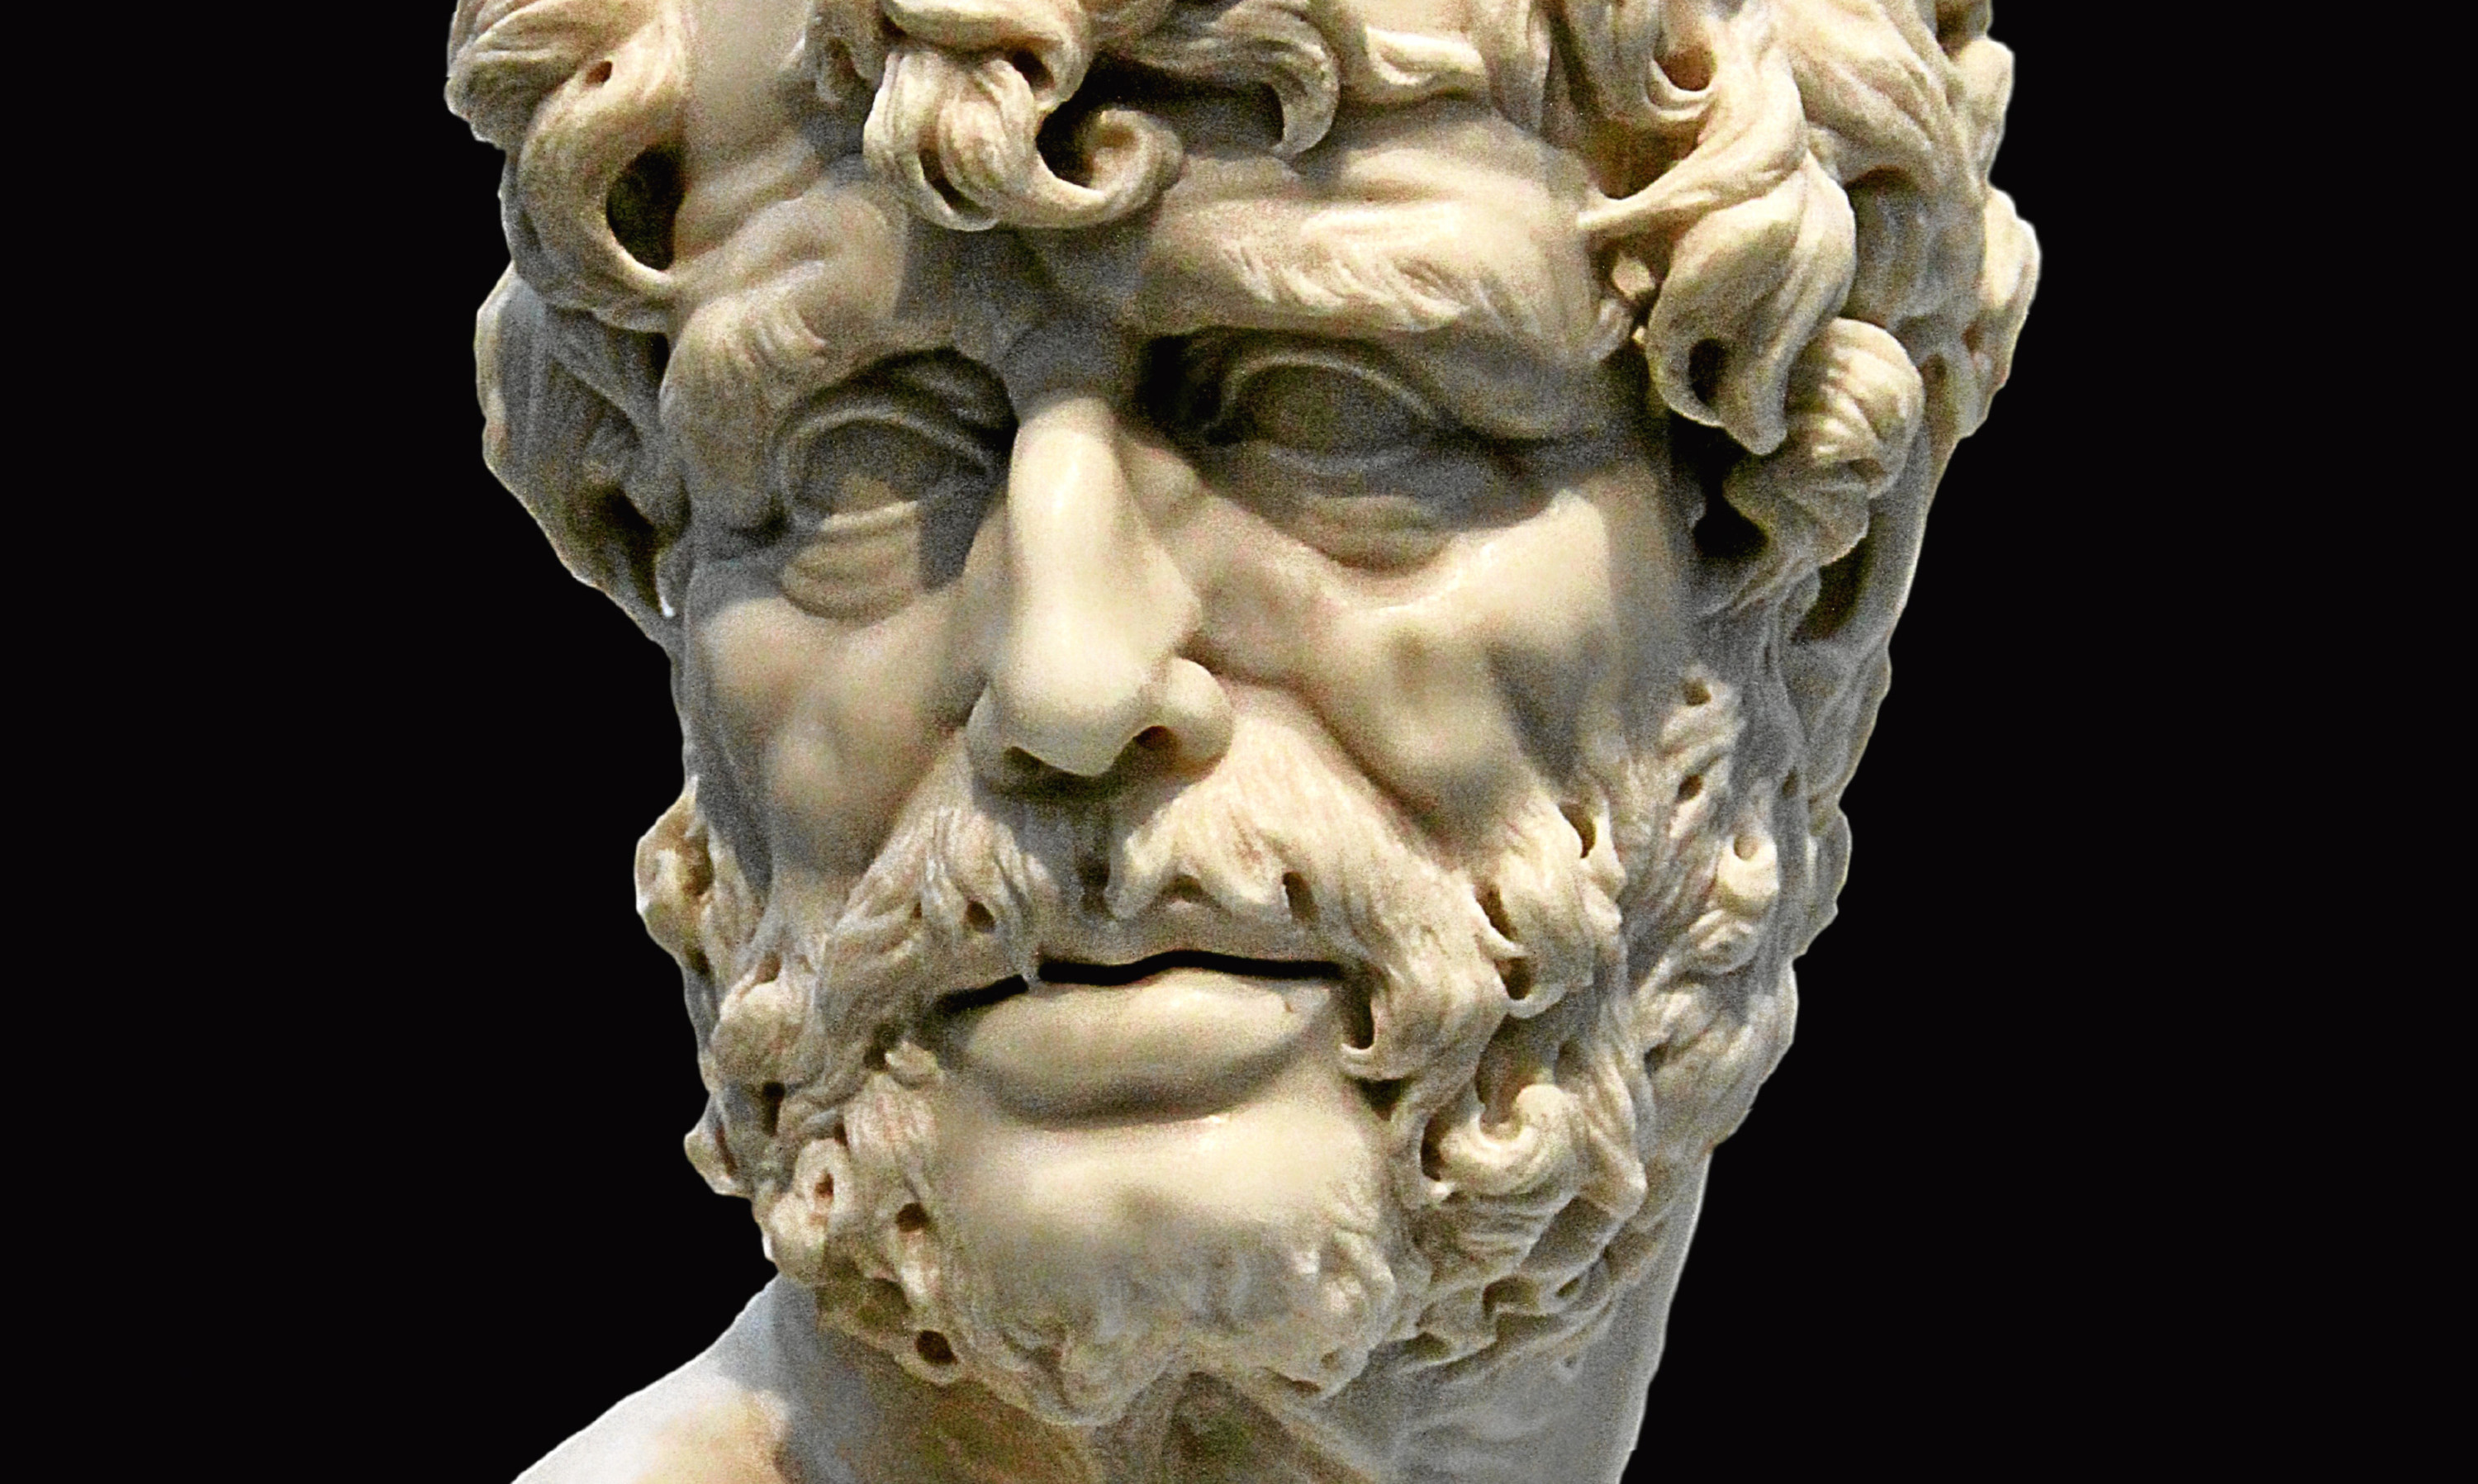 The Roman philosopher Seneca was known for his stoicism. We may need to be more like him in the future.